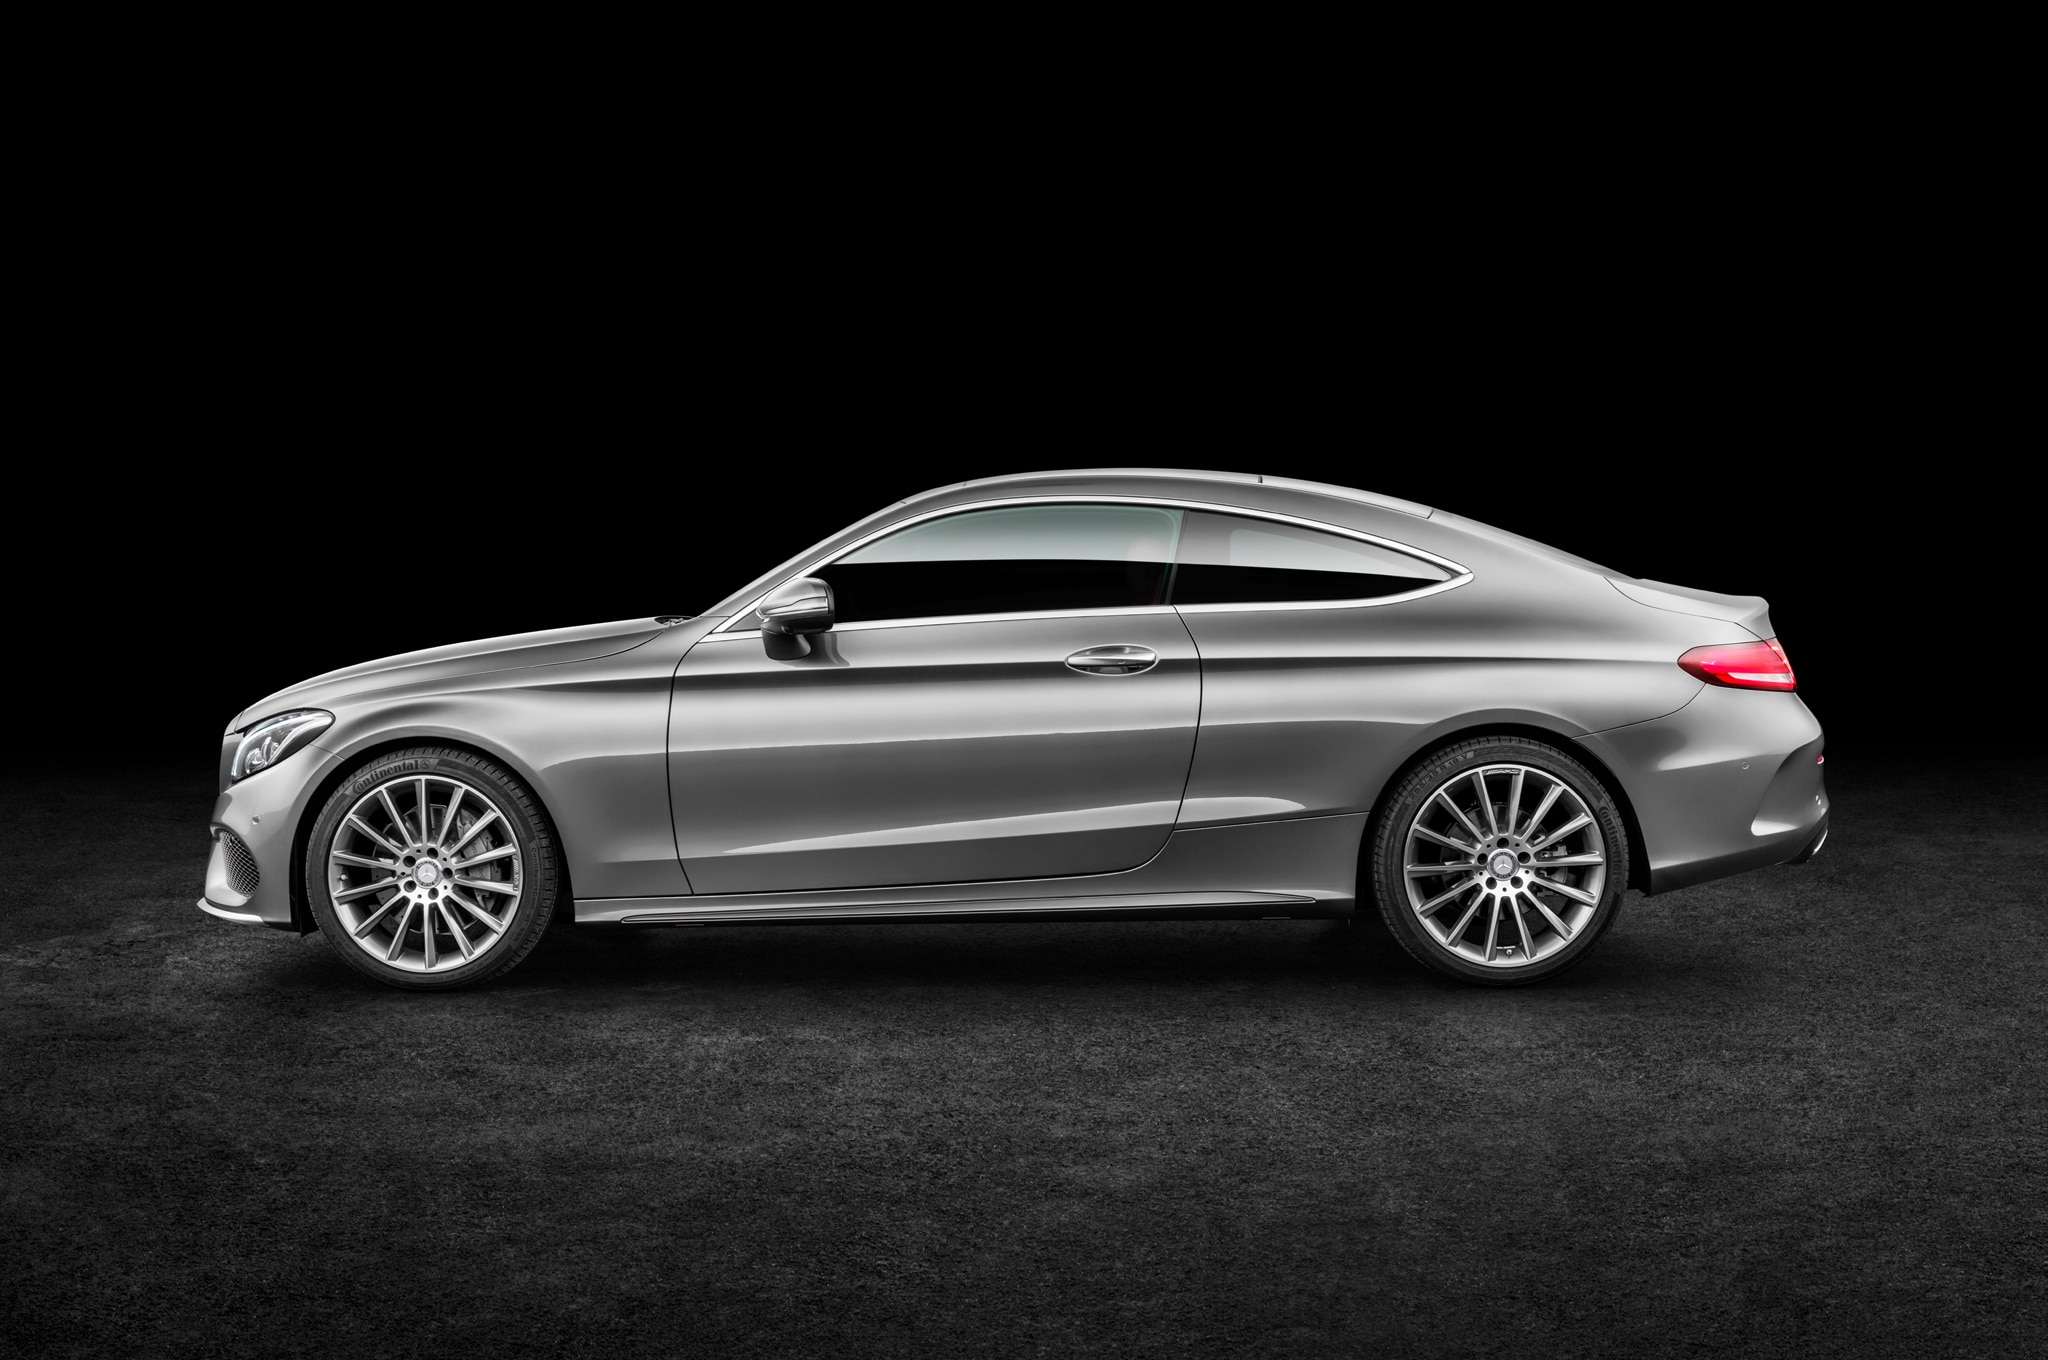 2017 mercedes benz c300 coupe debuts with fabulous two door design. Black Bedroom Furniture Sets. Home Design Ideas